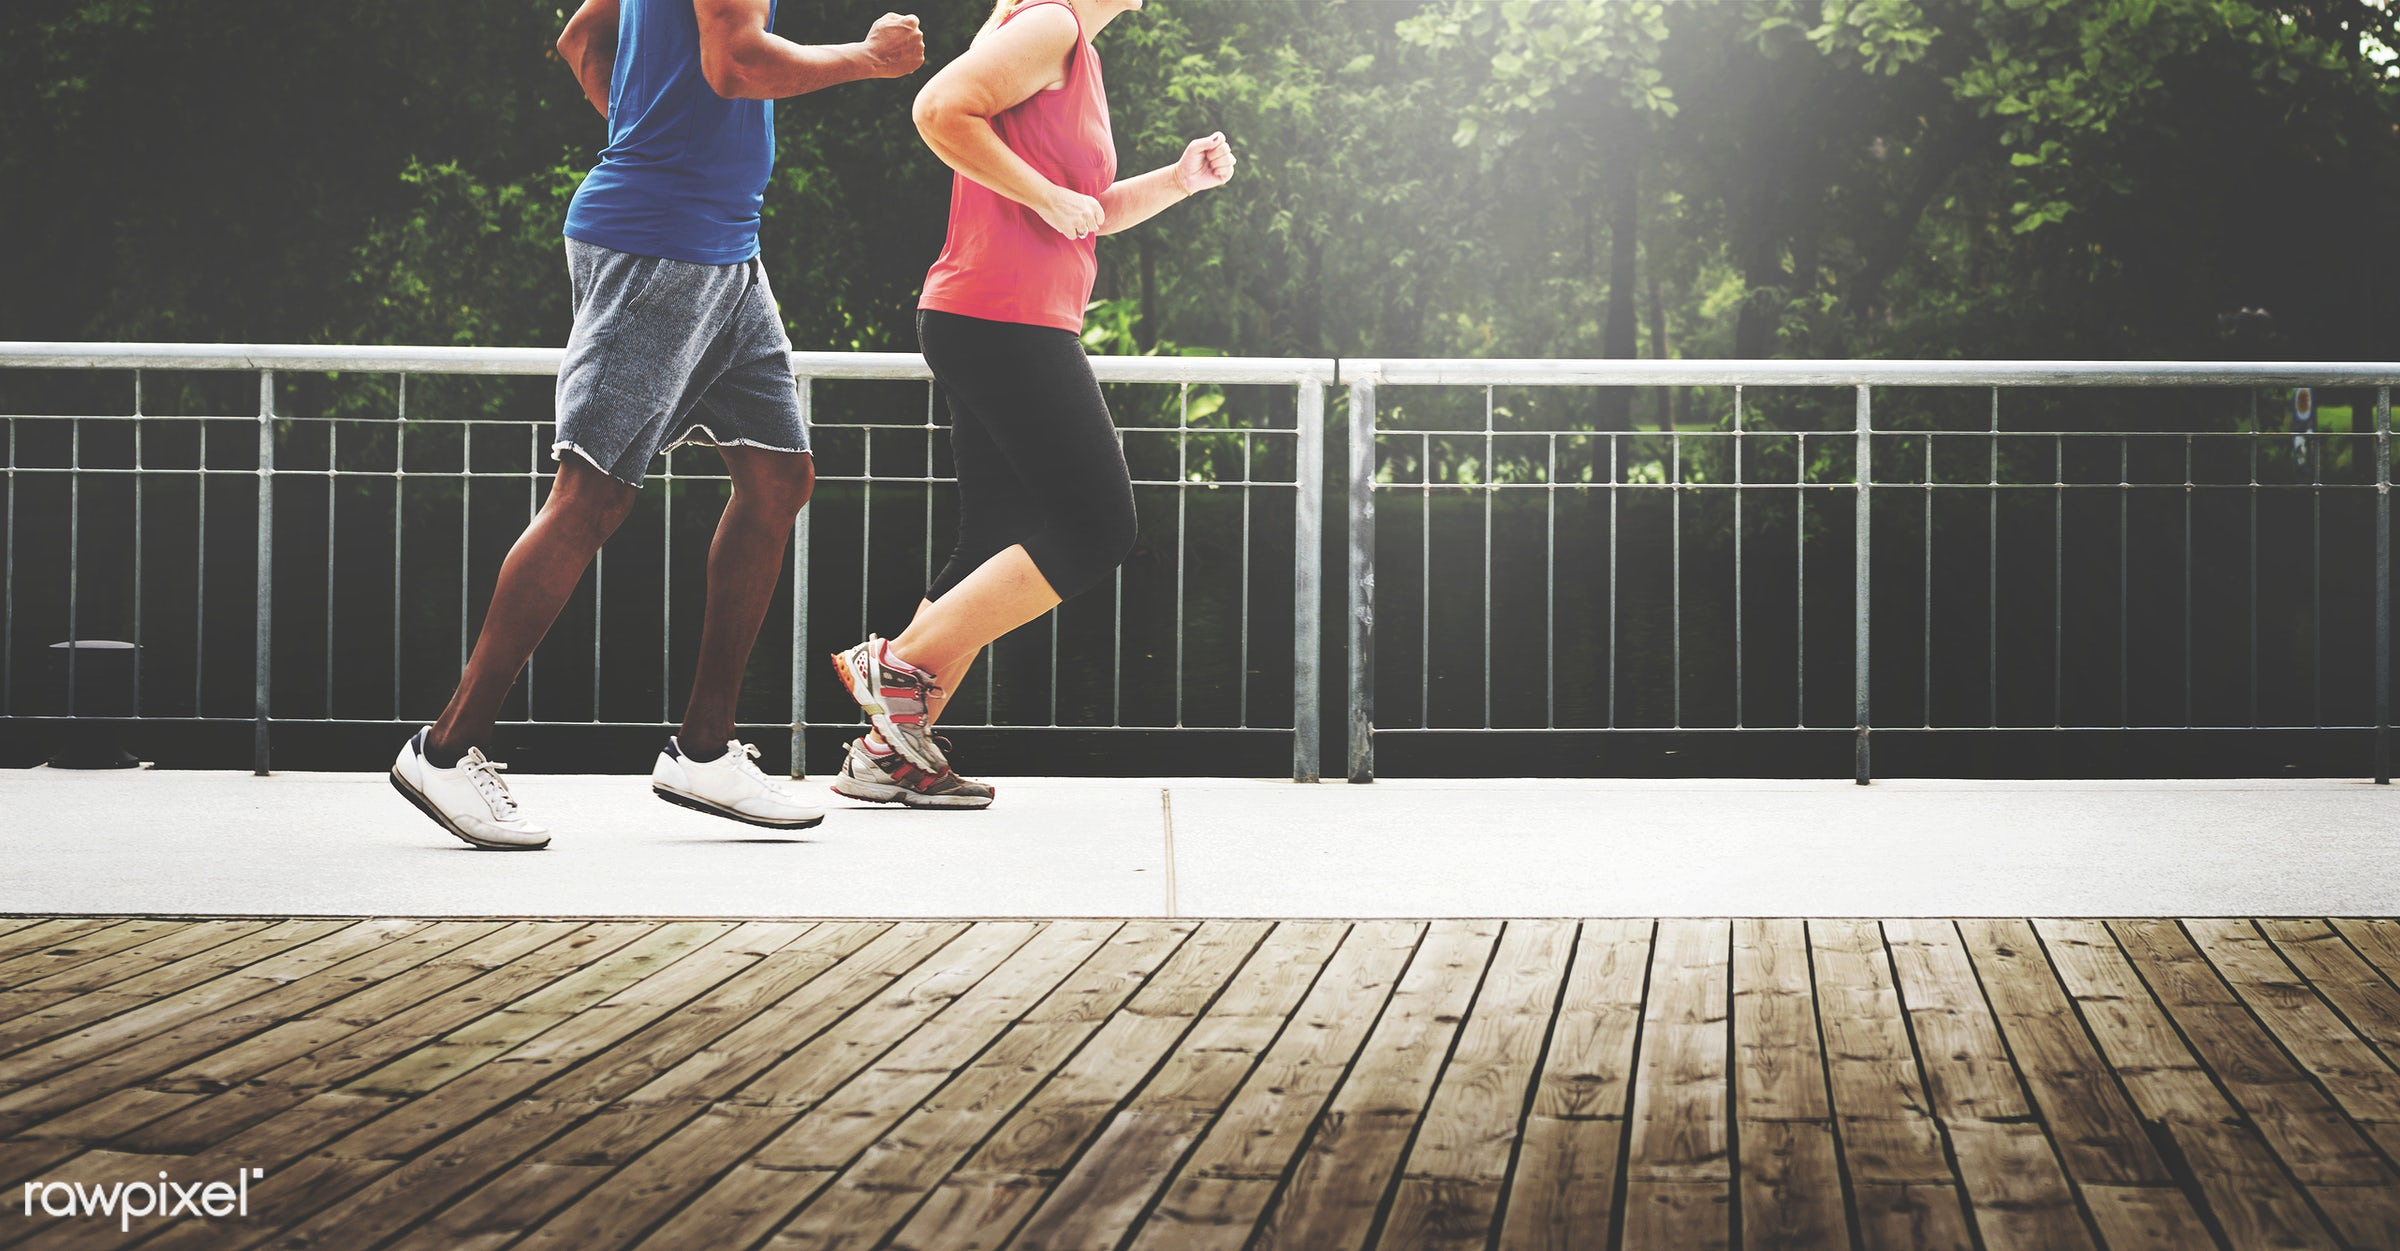 Couple jogging together in the park - jogging, active, activity, app, application, athlete, blue, body building, cardio,...